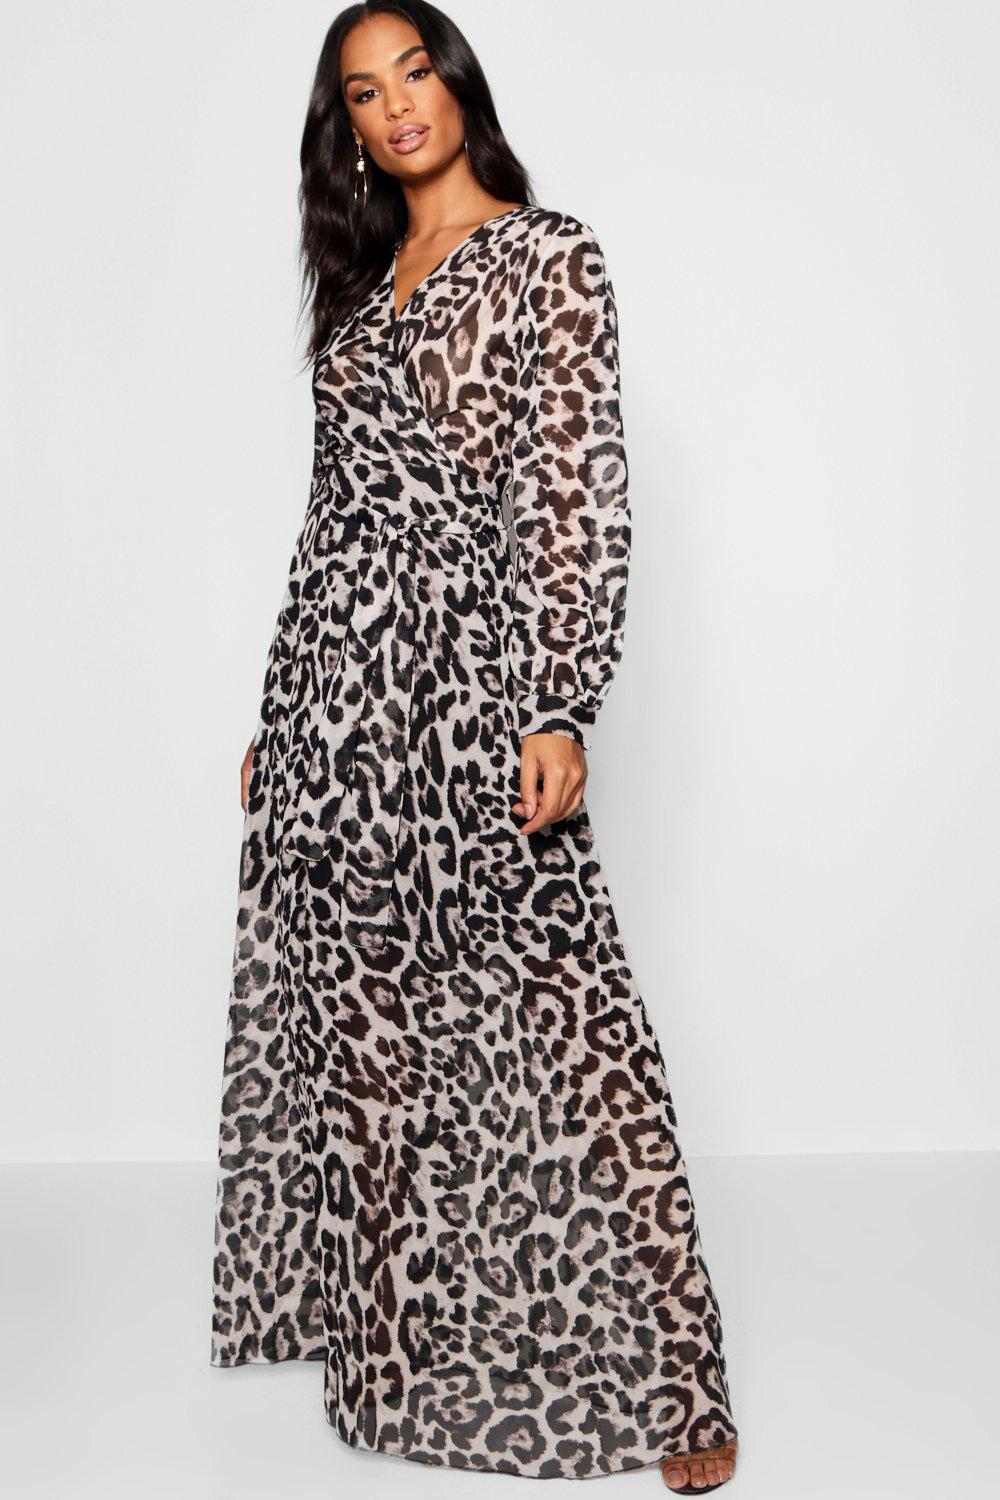 7f945b5984 ... Leopard Print Maxi Dress. Hover to zoom